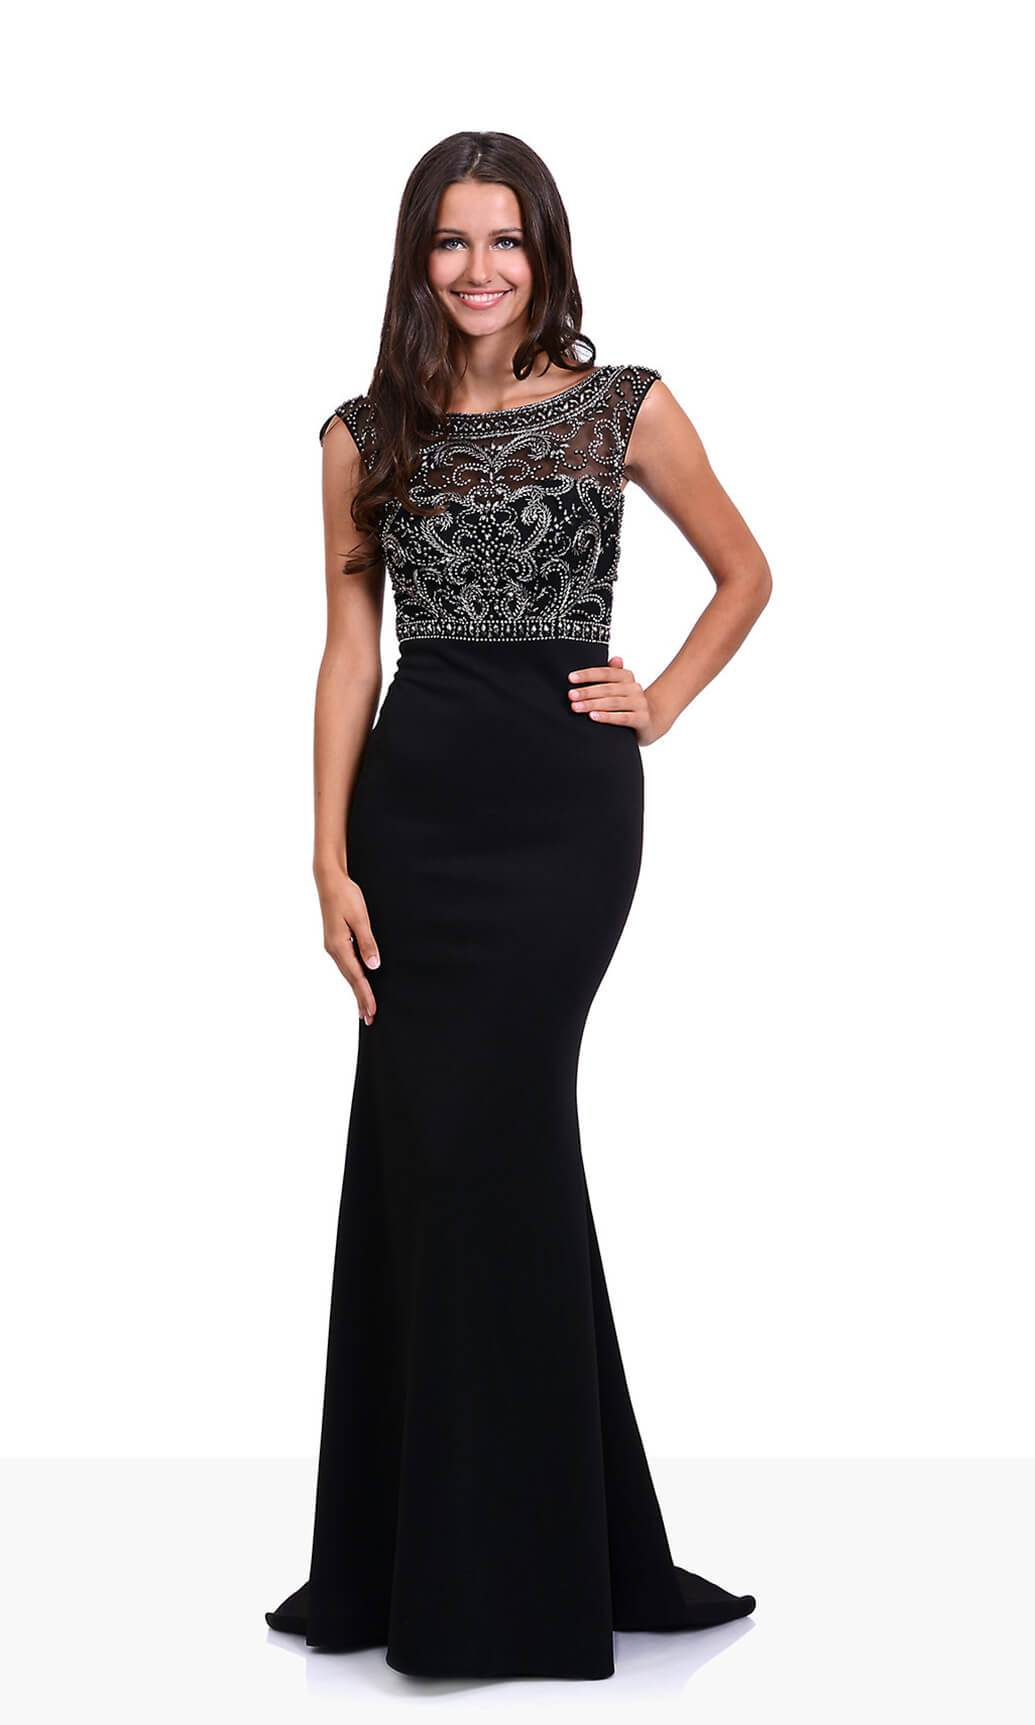 Christian Koehlert 0430 Phantom Black Evening Prom Dress